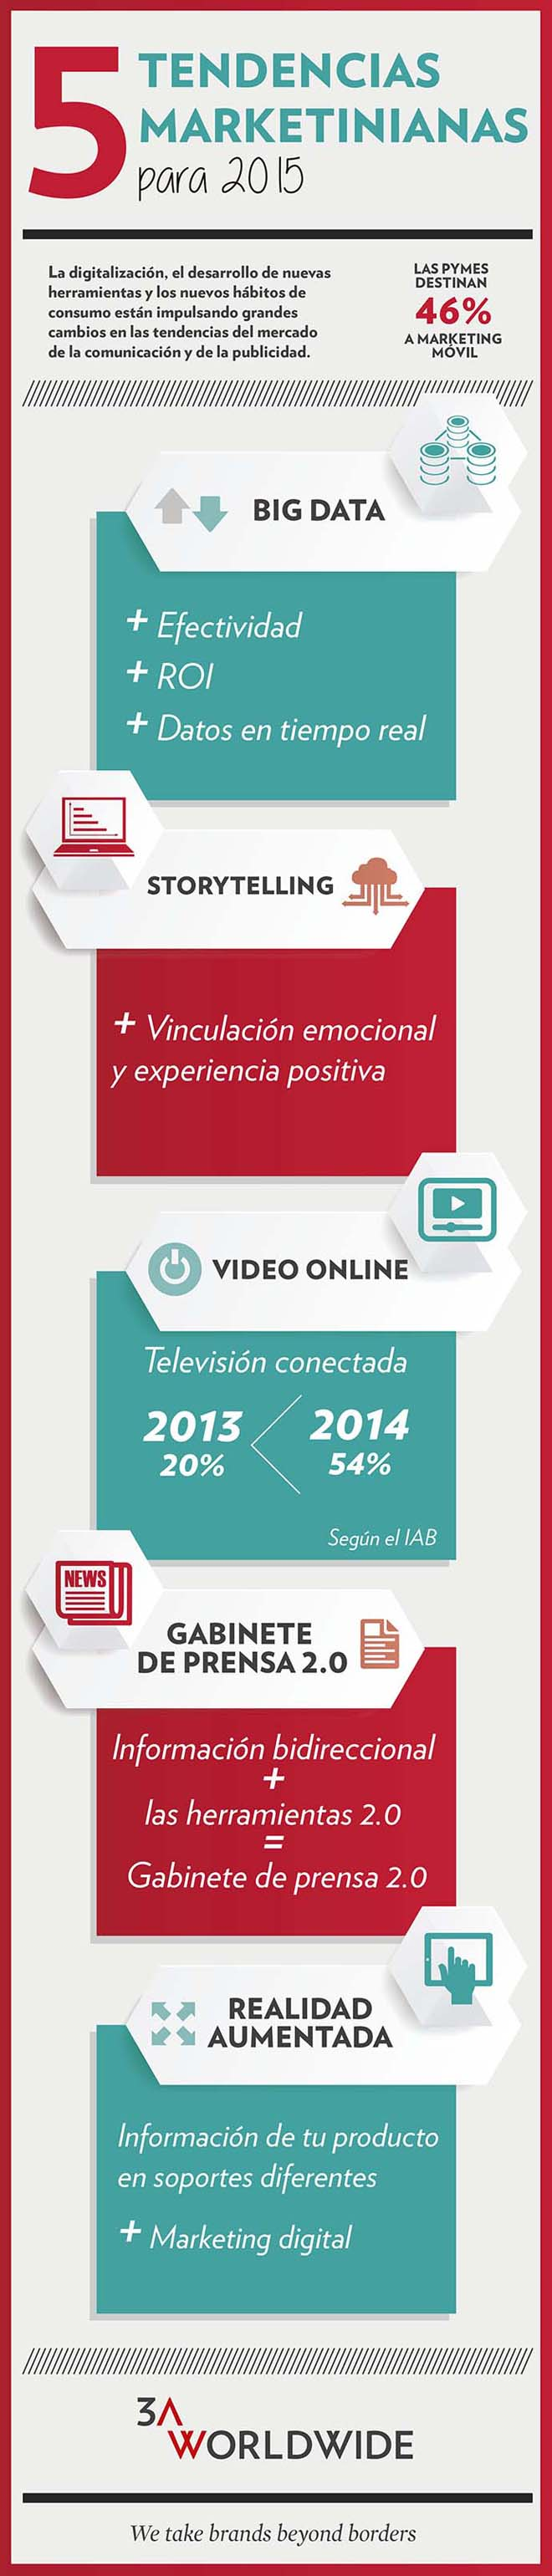 Tendencias de marketing en 2015